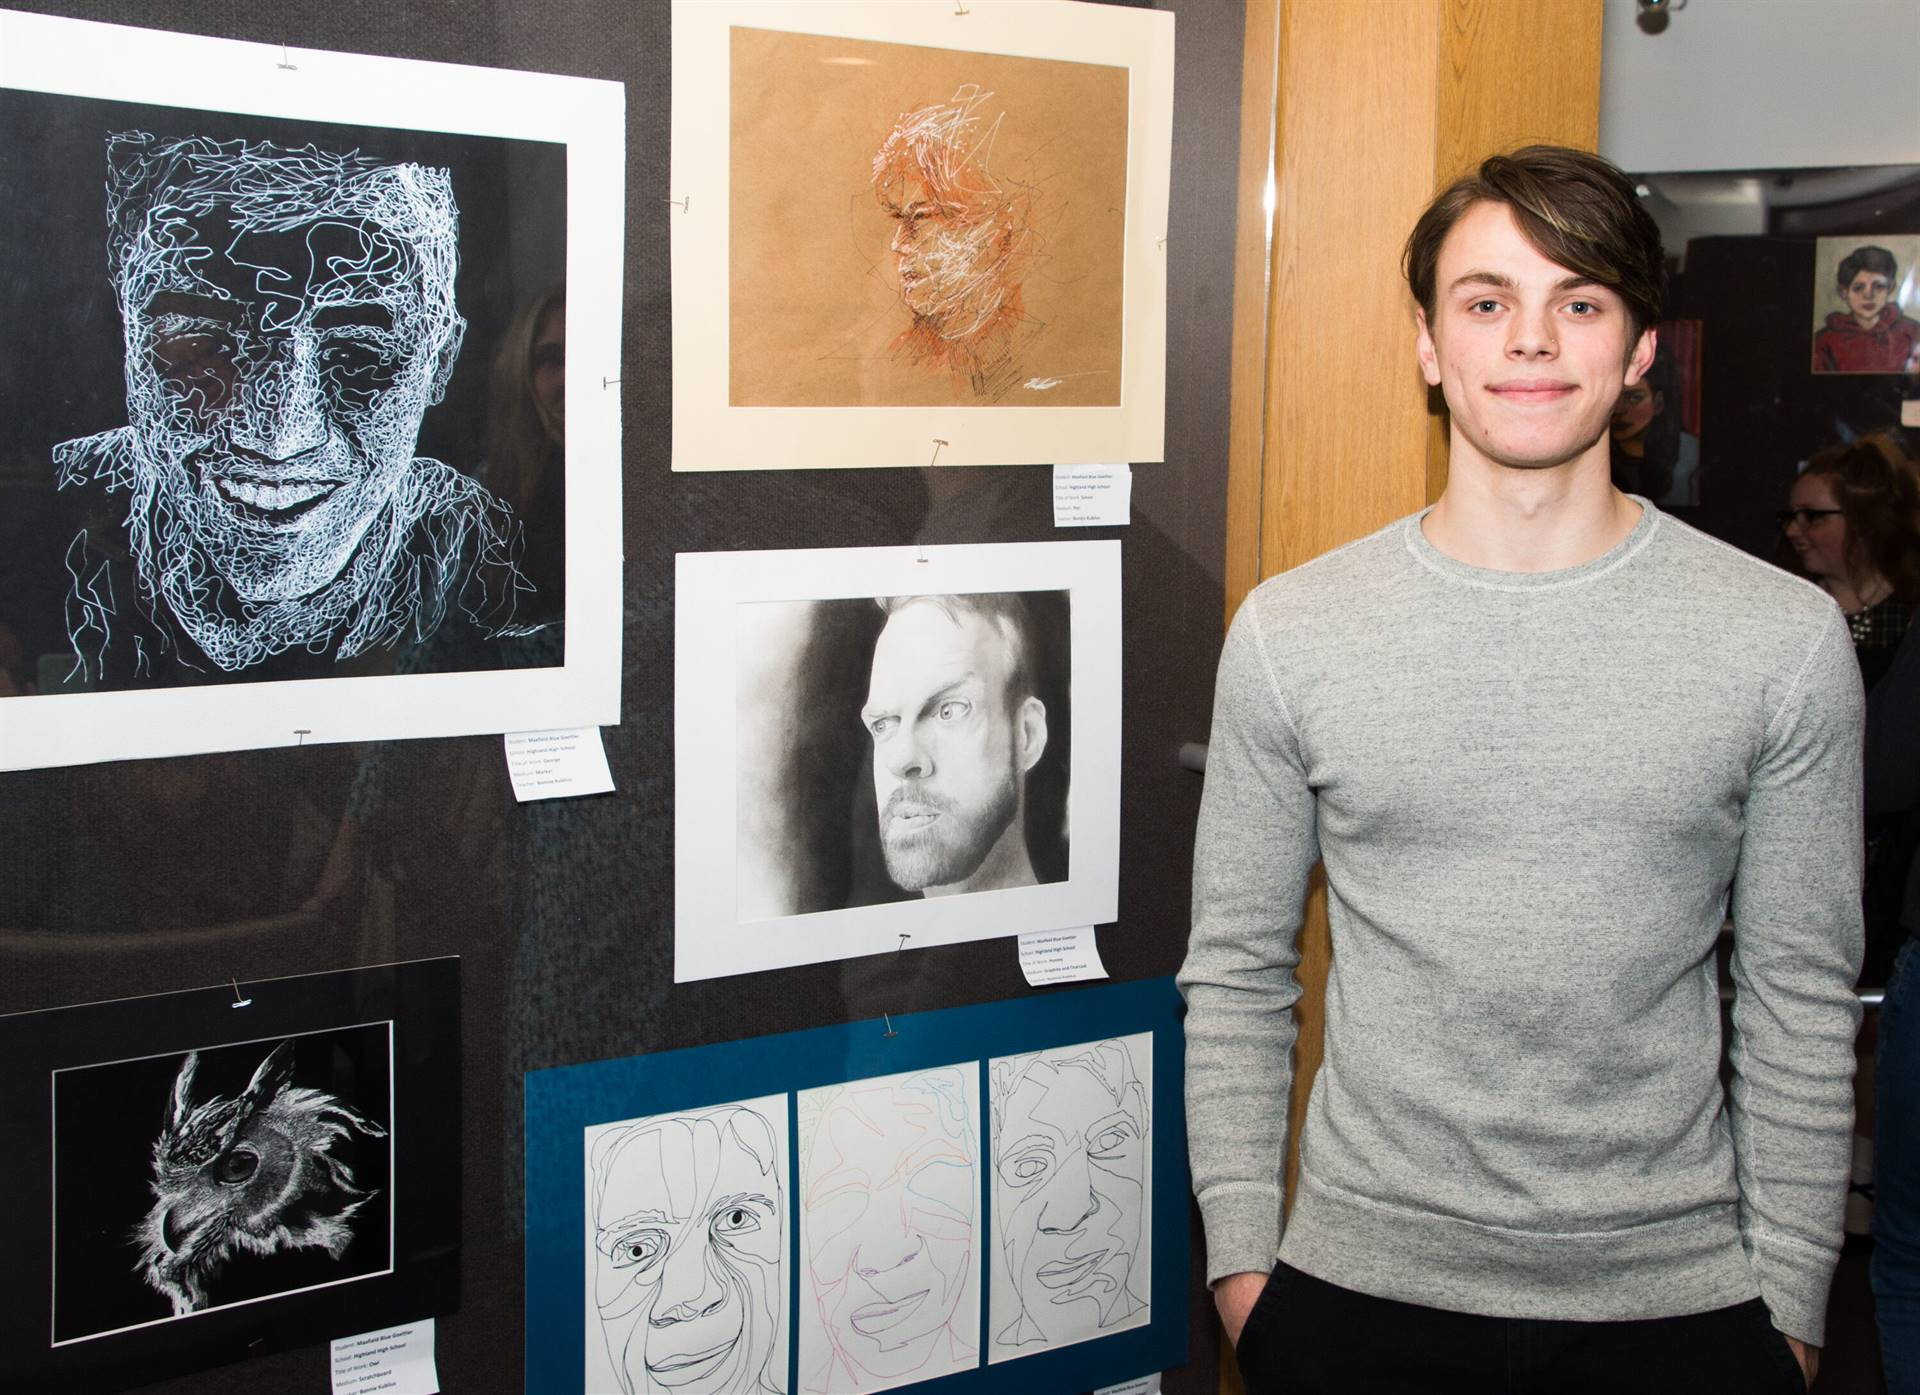 Maxfield Goettler, H.M. 2019 MCAL Scholarship Winner, with his artwork